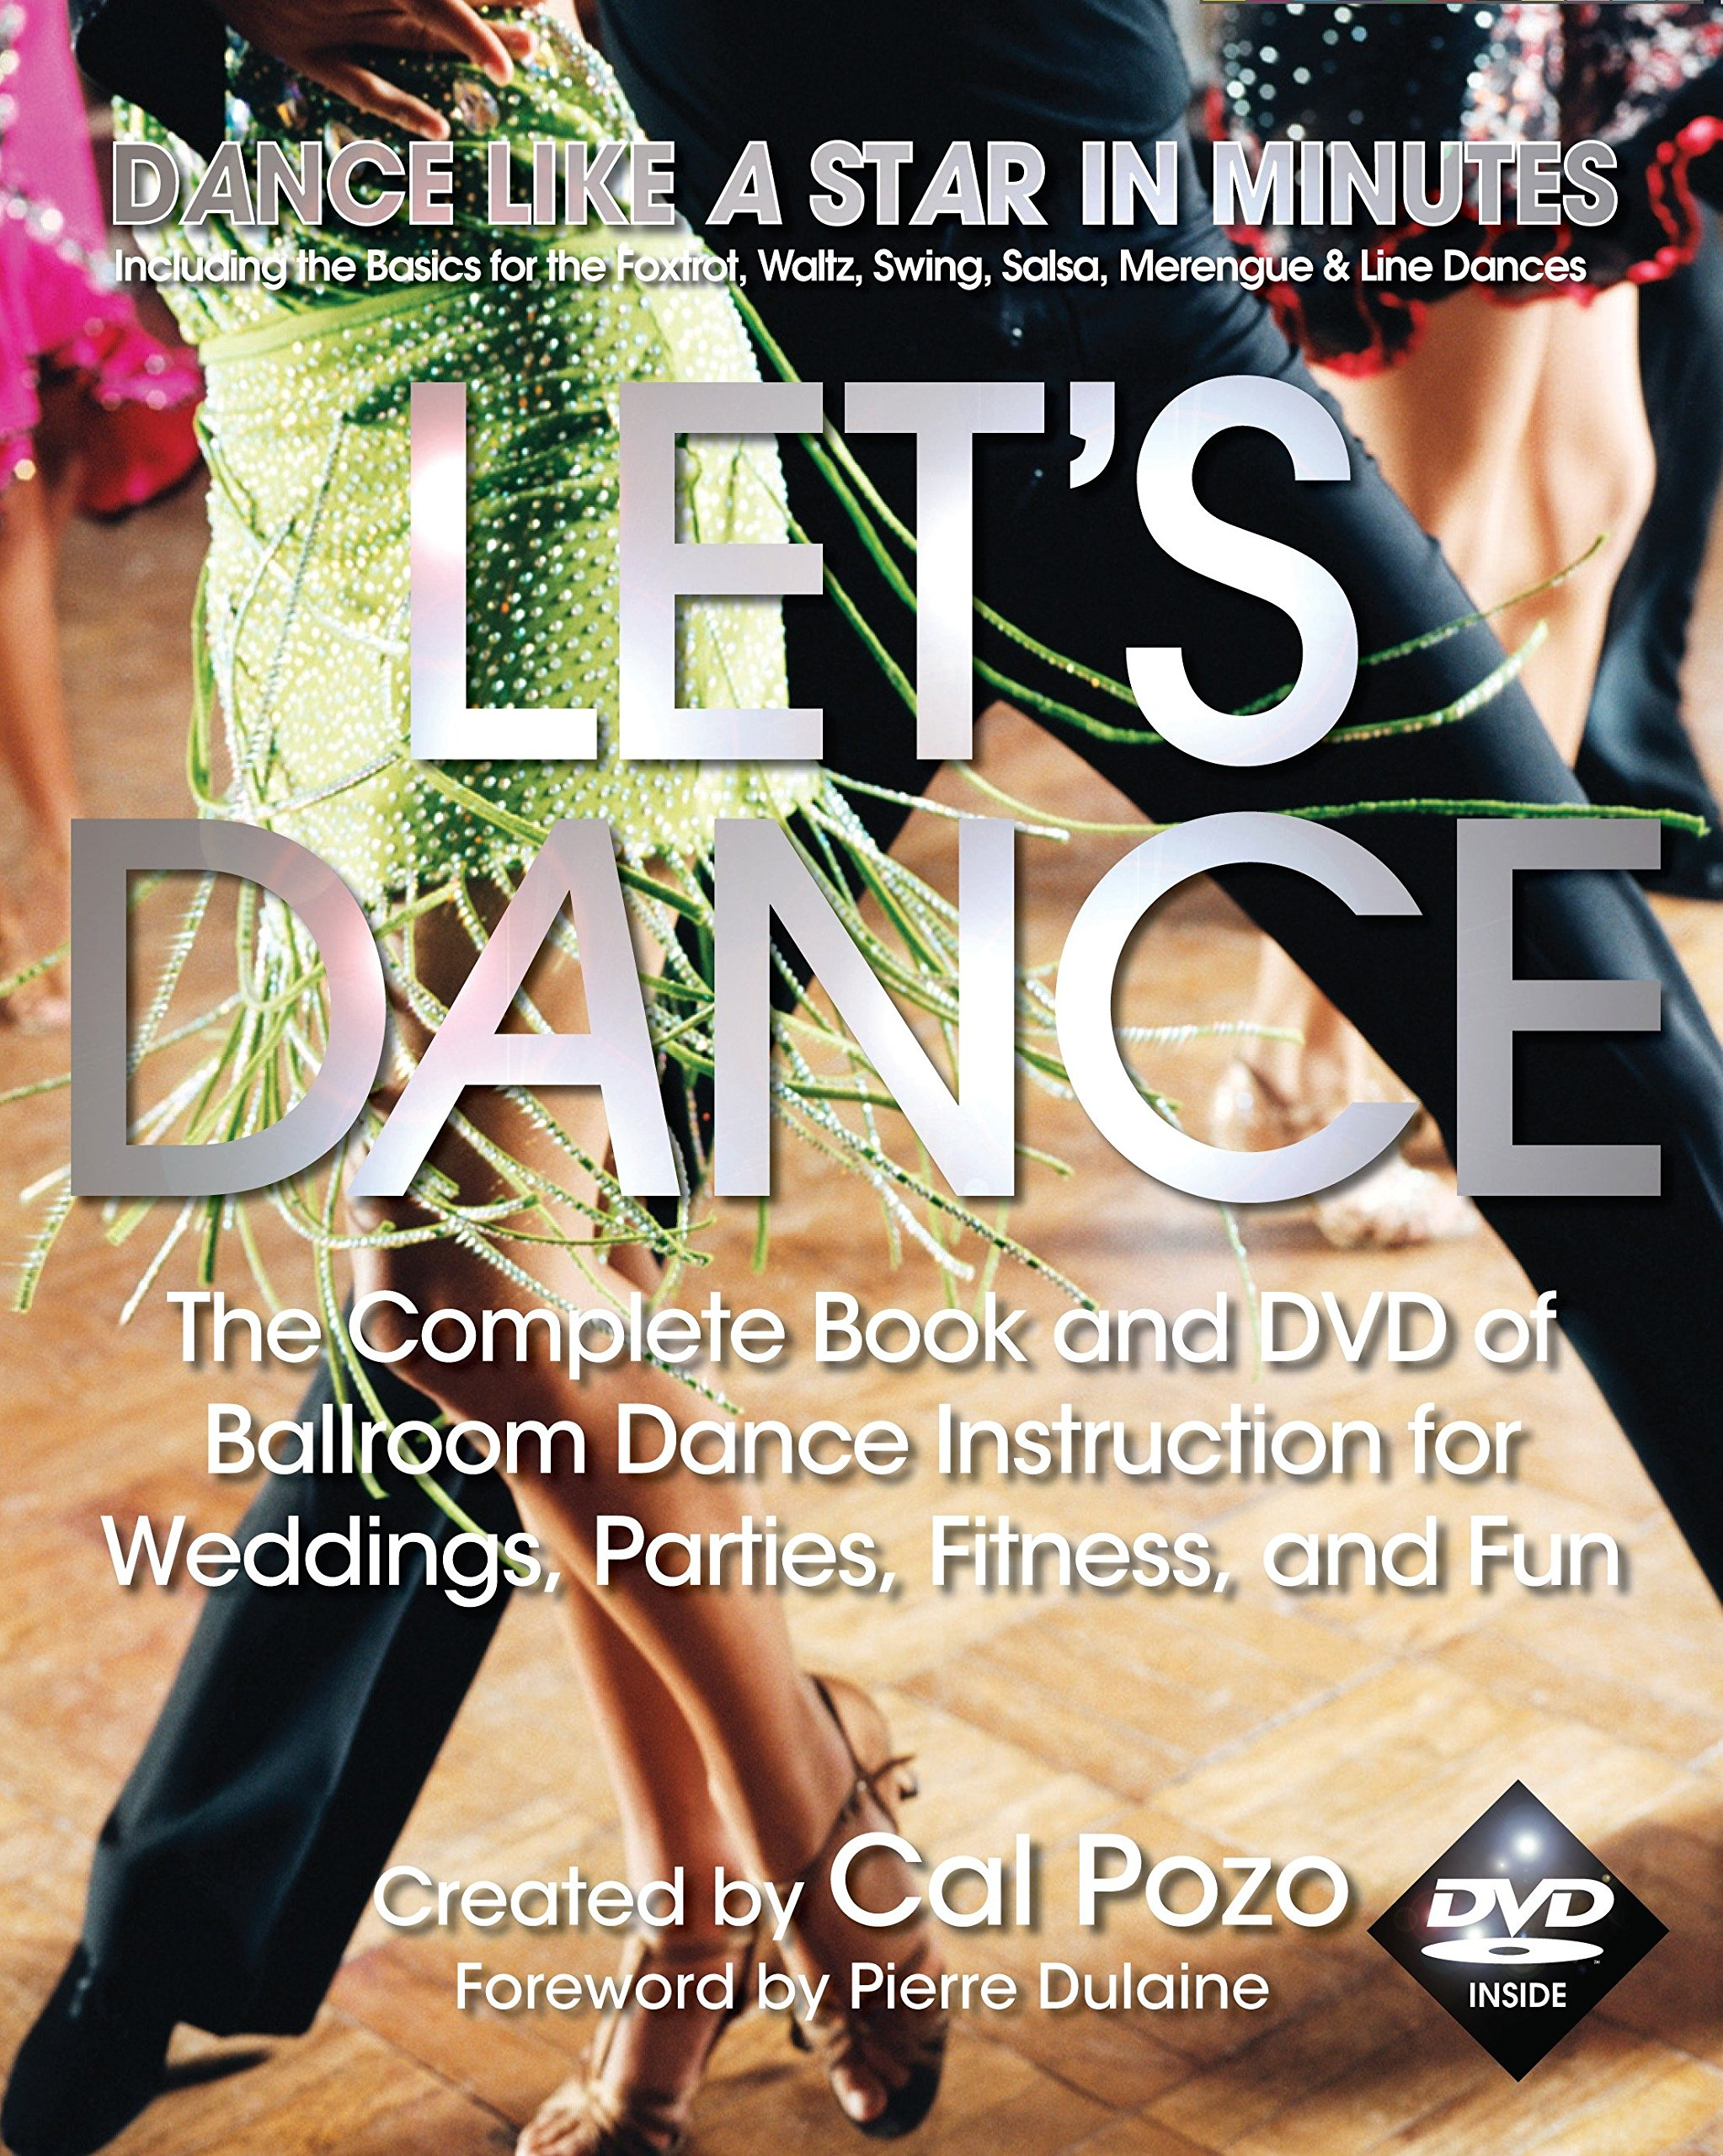 Let's Dance: The Complete Book and DVD of Ballroom Dance Instruction for Weddings, Parties, Fitness, and Fun